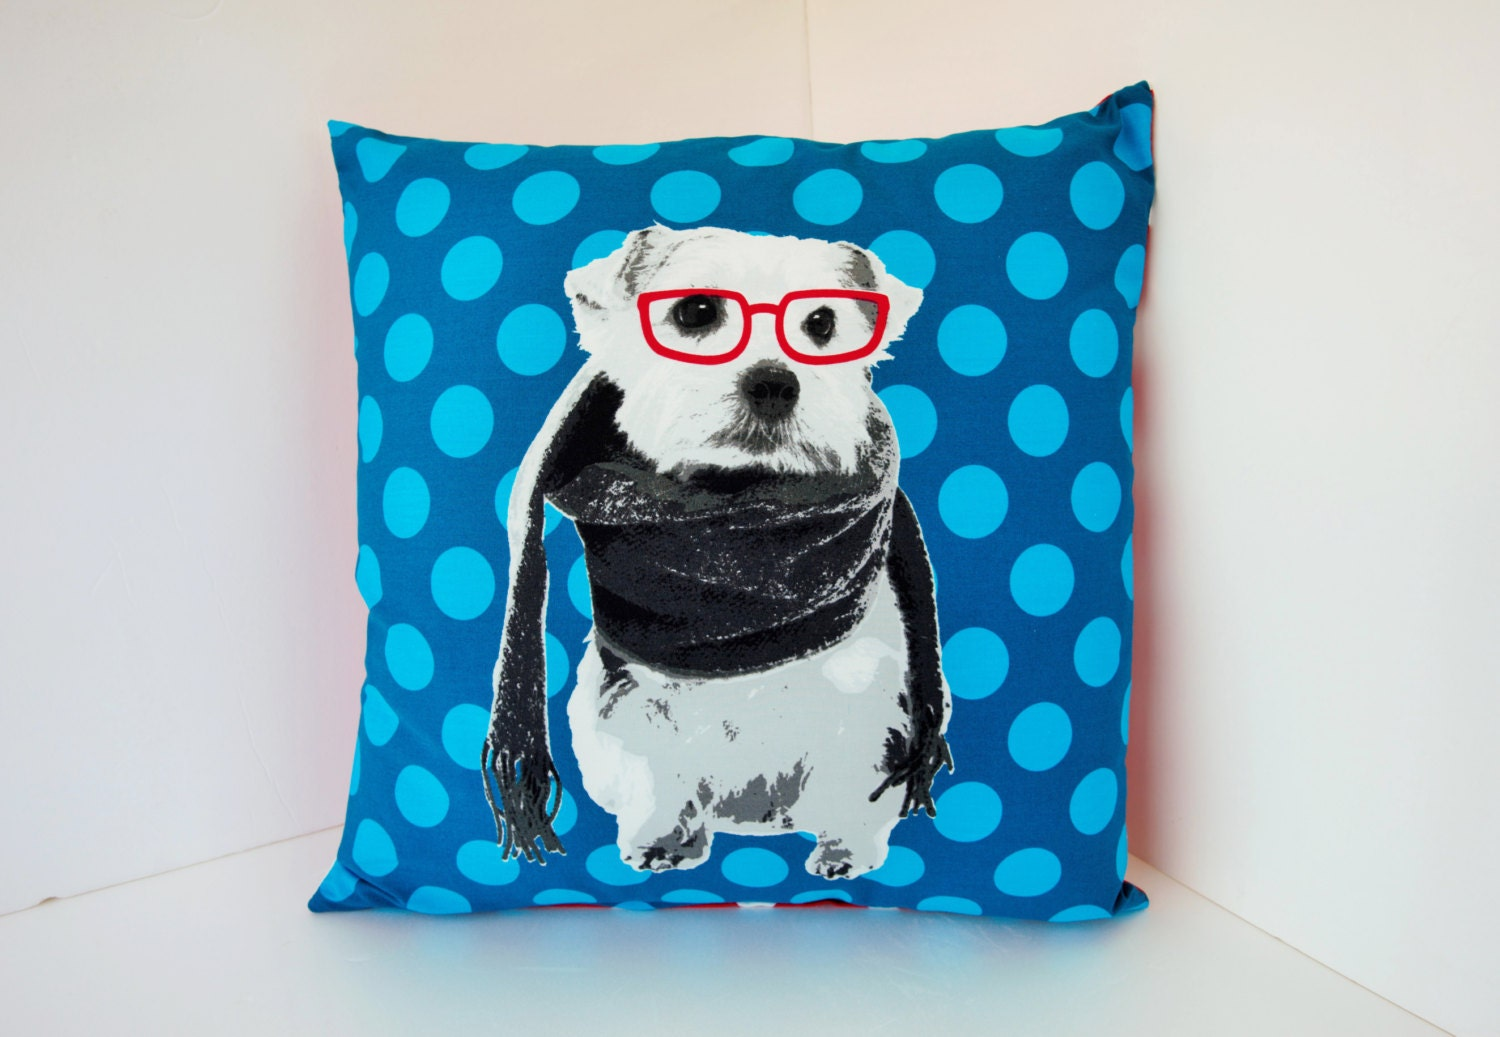 Decorative Pillow With Dog : Dog pillow case sofa bedding pillow throw decorative pillow